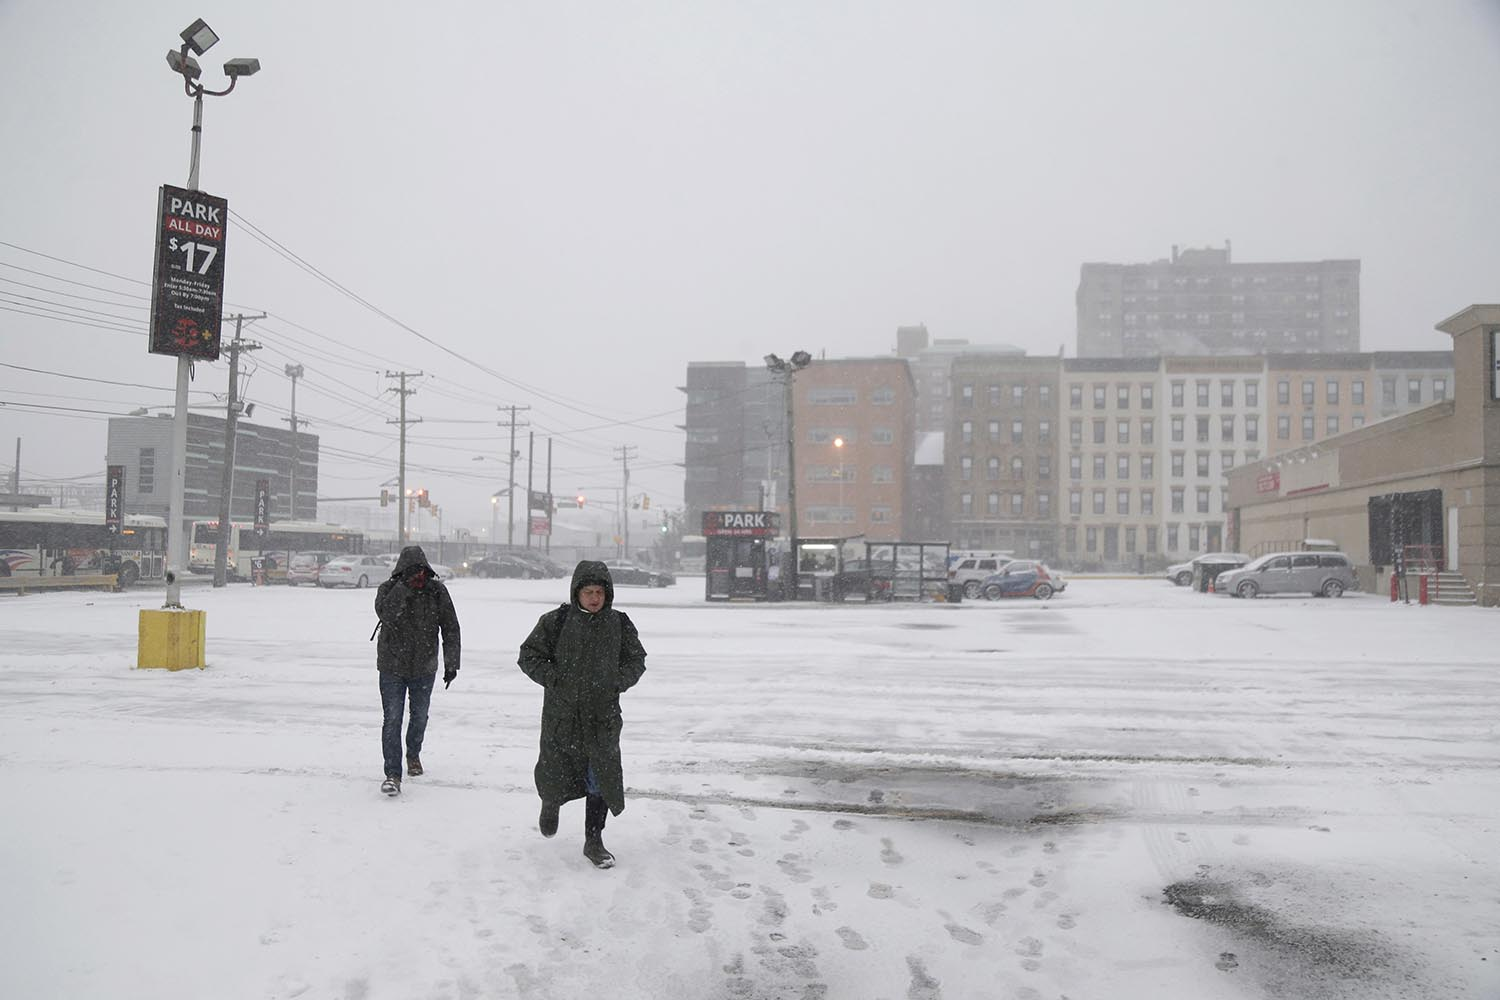 <div class='meta'><div class='origin-logo' data-origin='AP'></div><span class='caption-text' data-credit='AP Photo/Seth Wenig'>People makes their way across an almost empty parking lot in Hoboken, N.J., Thursday, Jan. 4, 2018.</span></div>